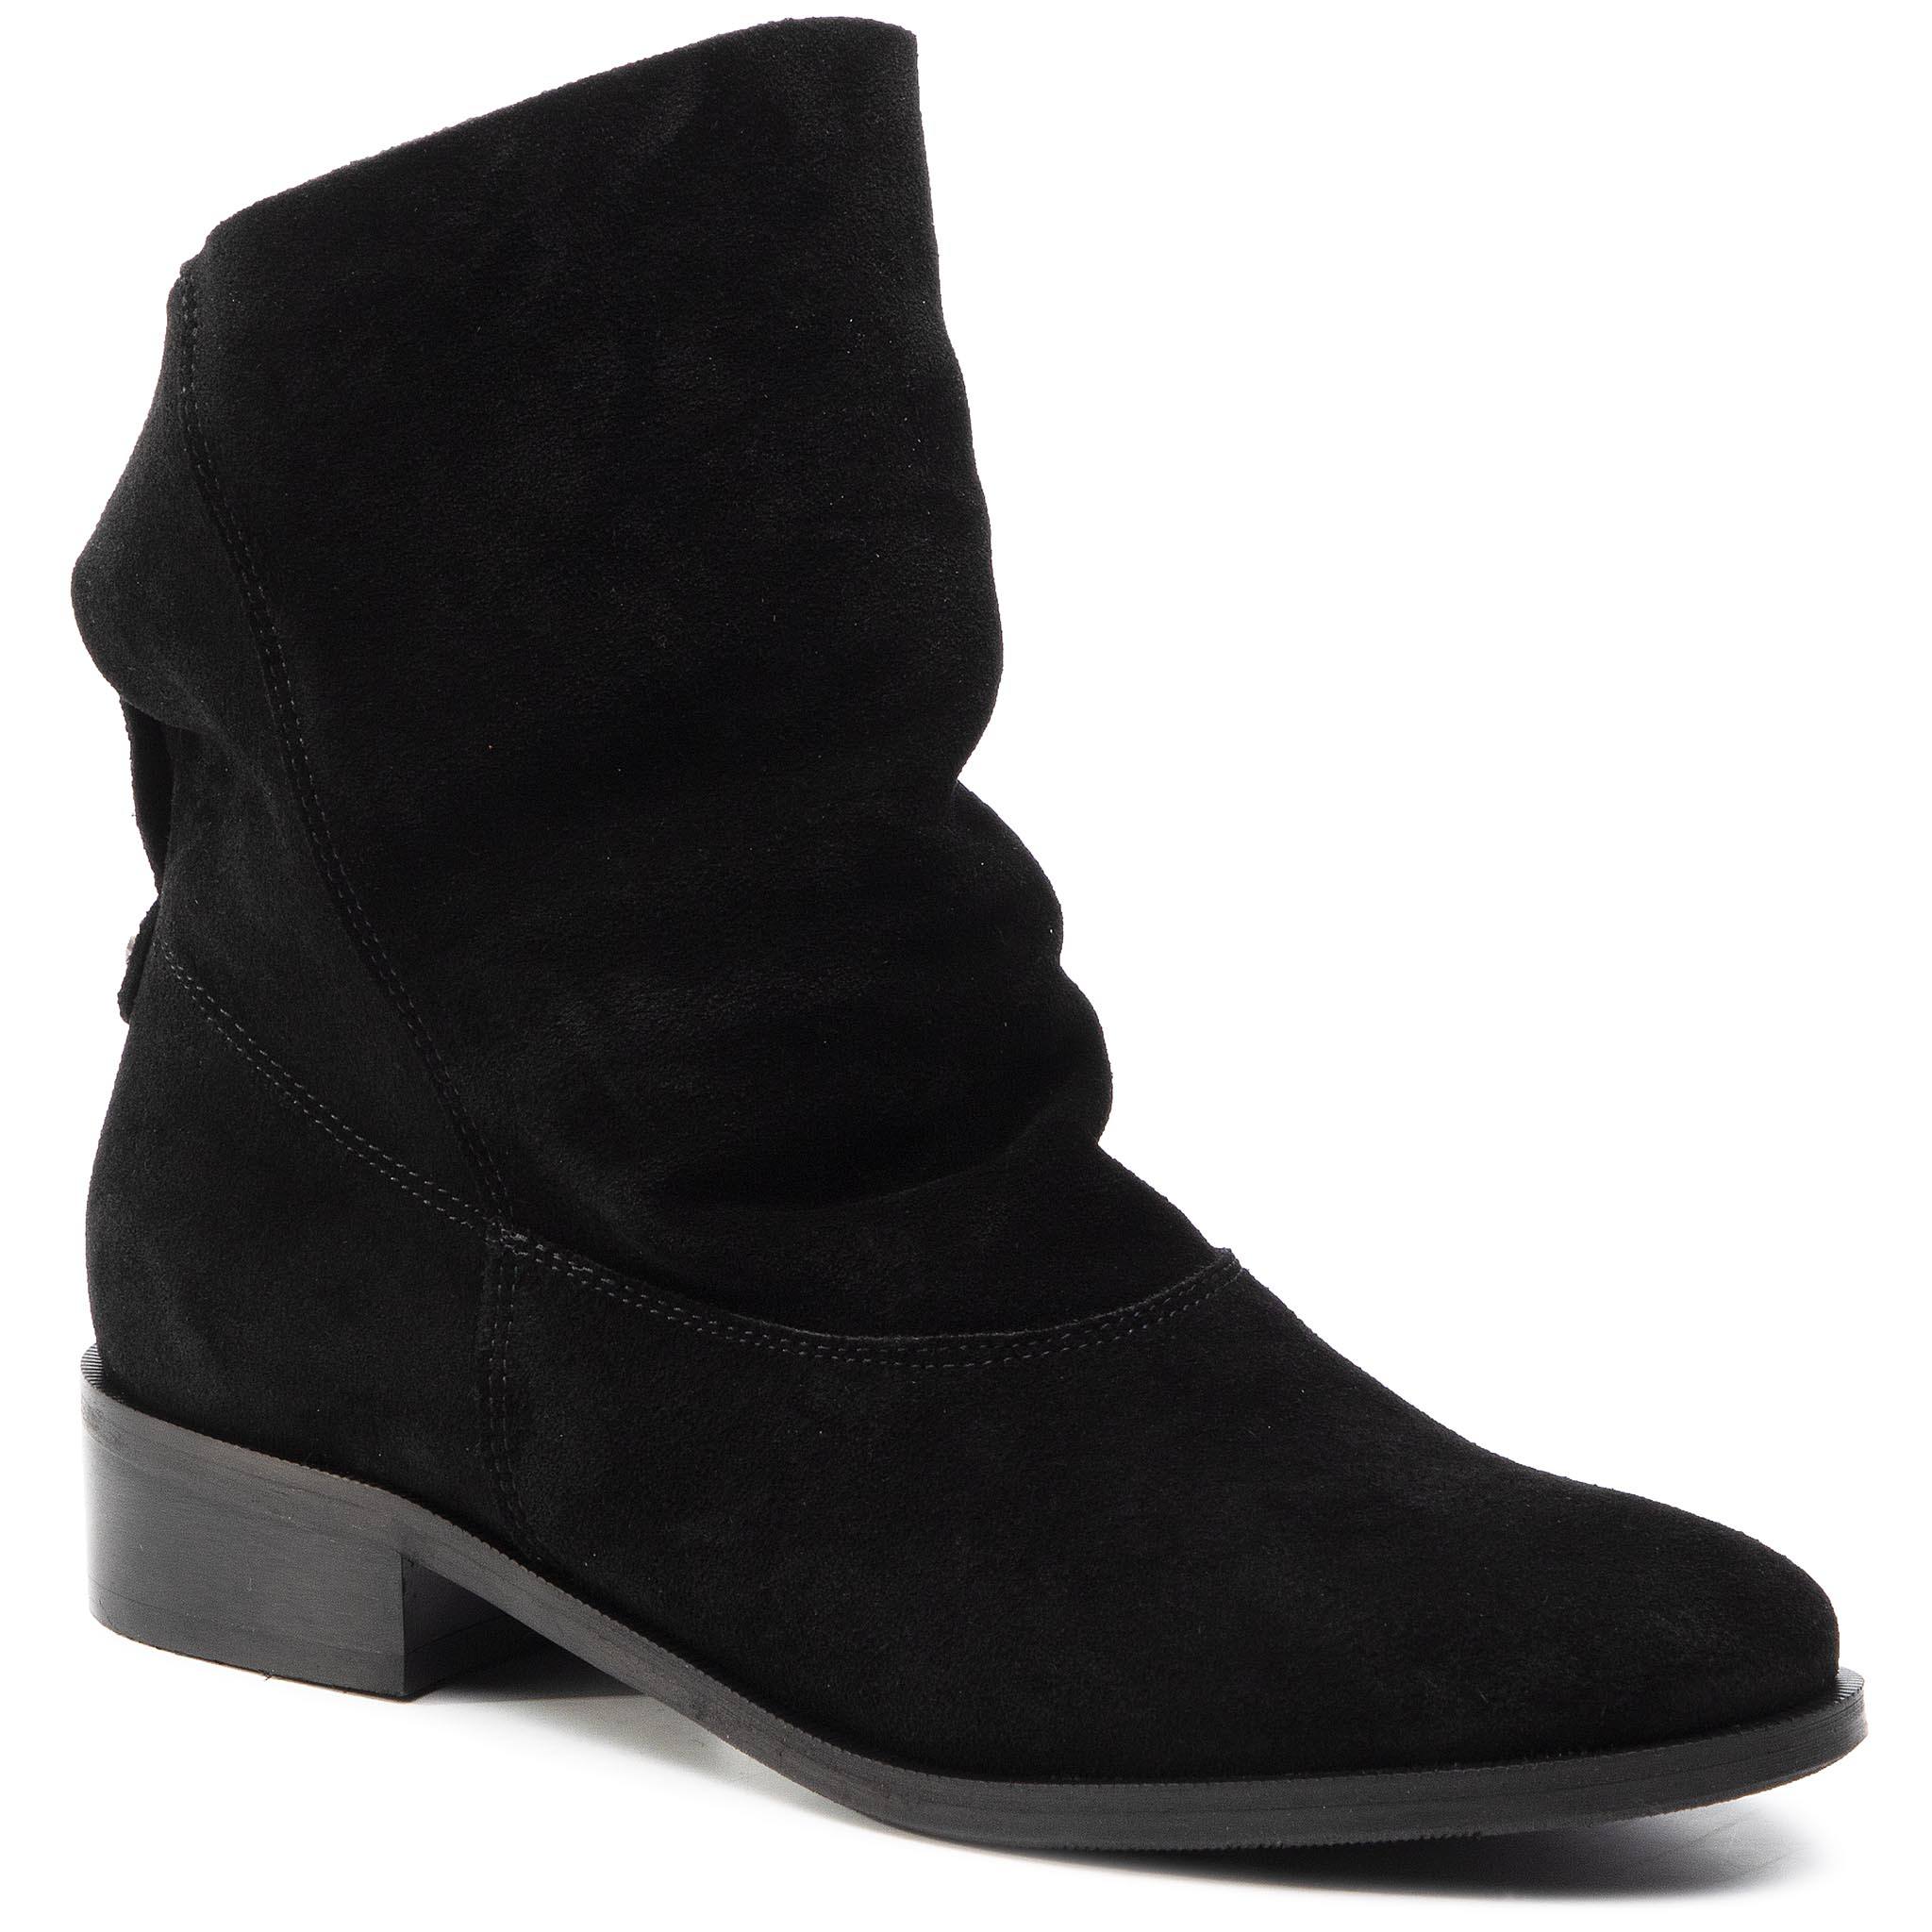 Bottines OLEKSY - 2700/E12/000/000/000 Noir